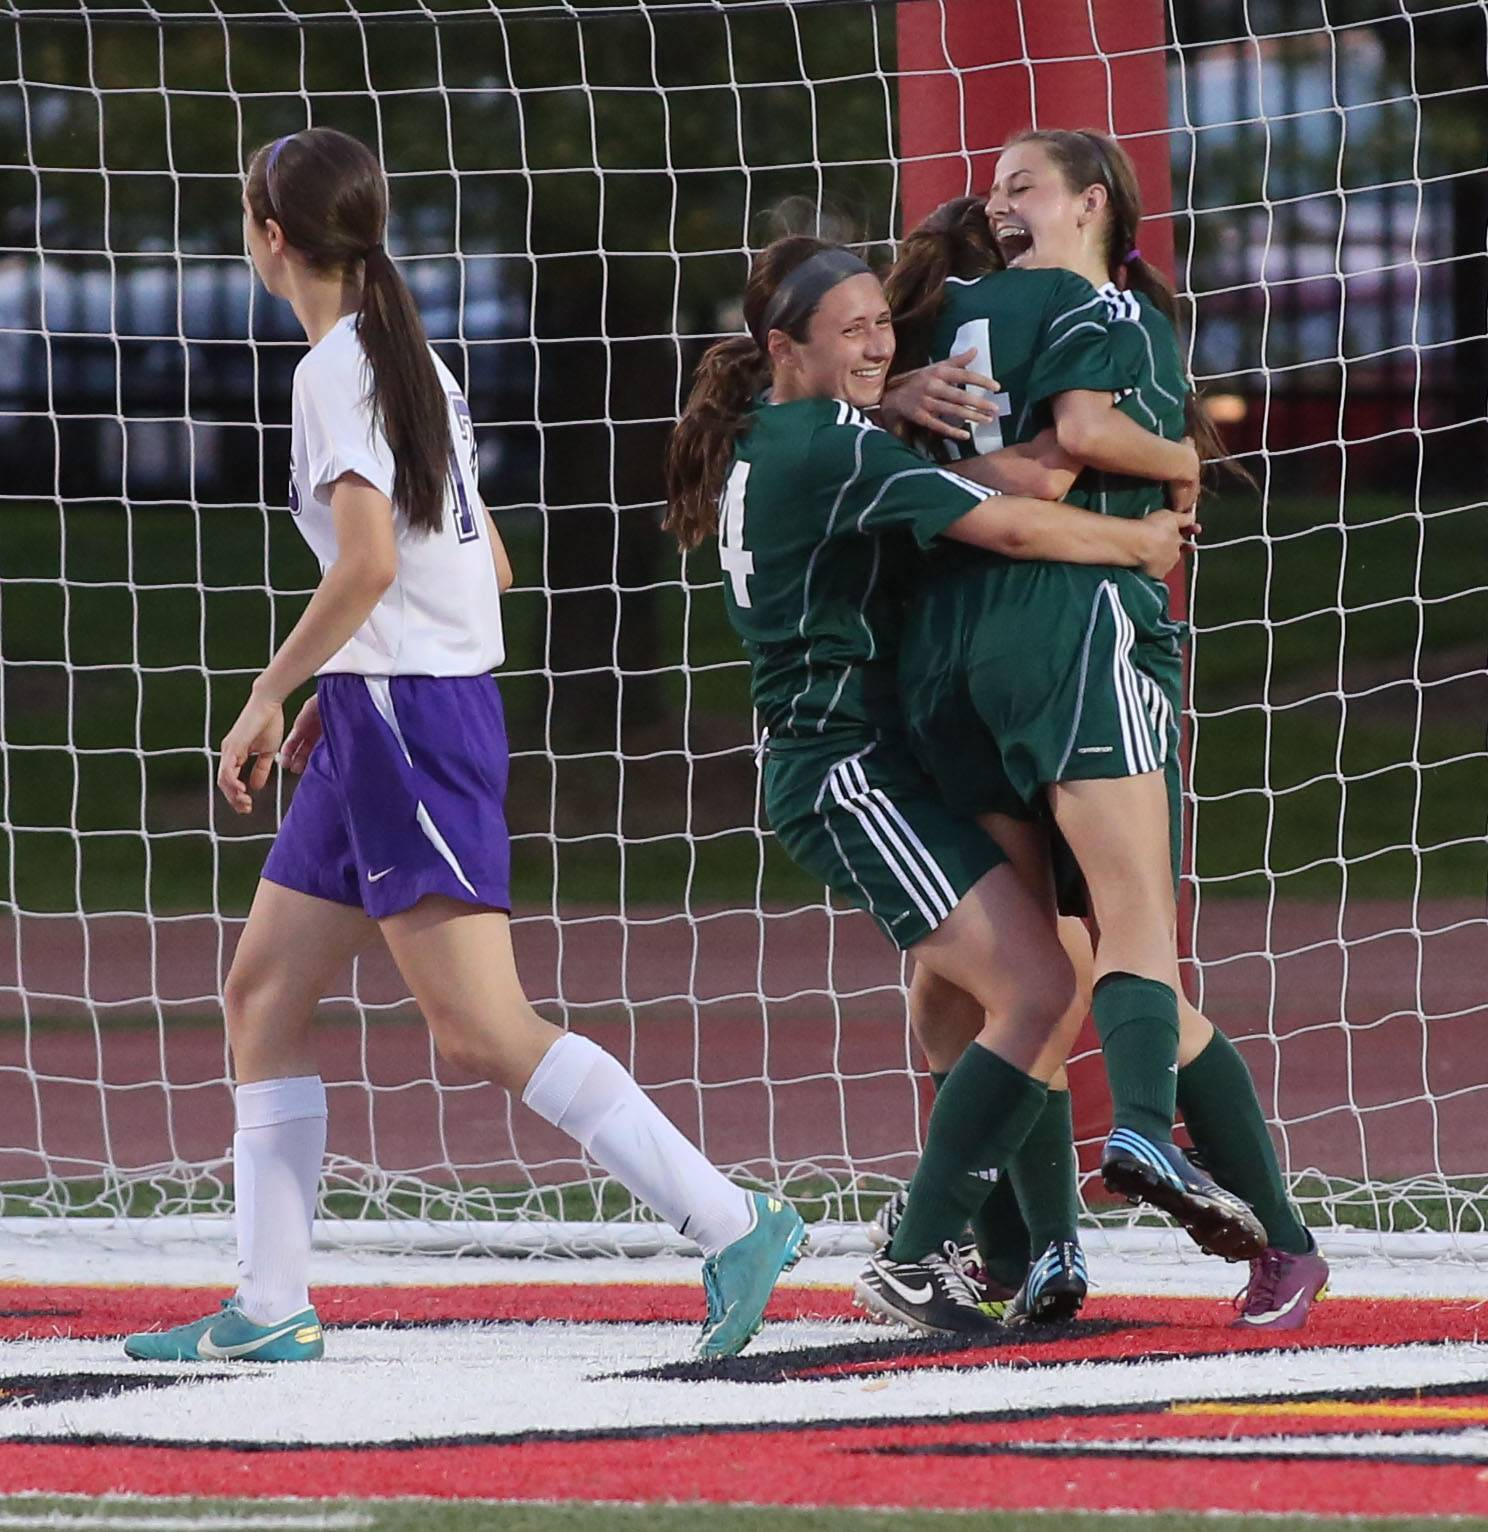 St. Edward vs. Manteno during the Class 1A state soccer semifinals at North Central College in Naperville on Friday.